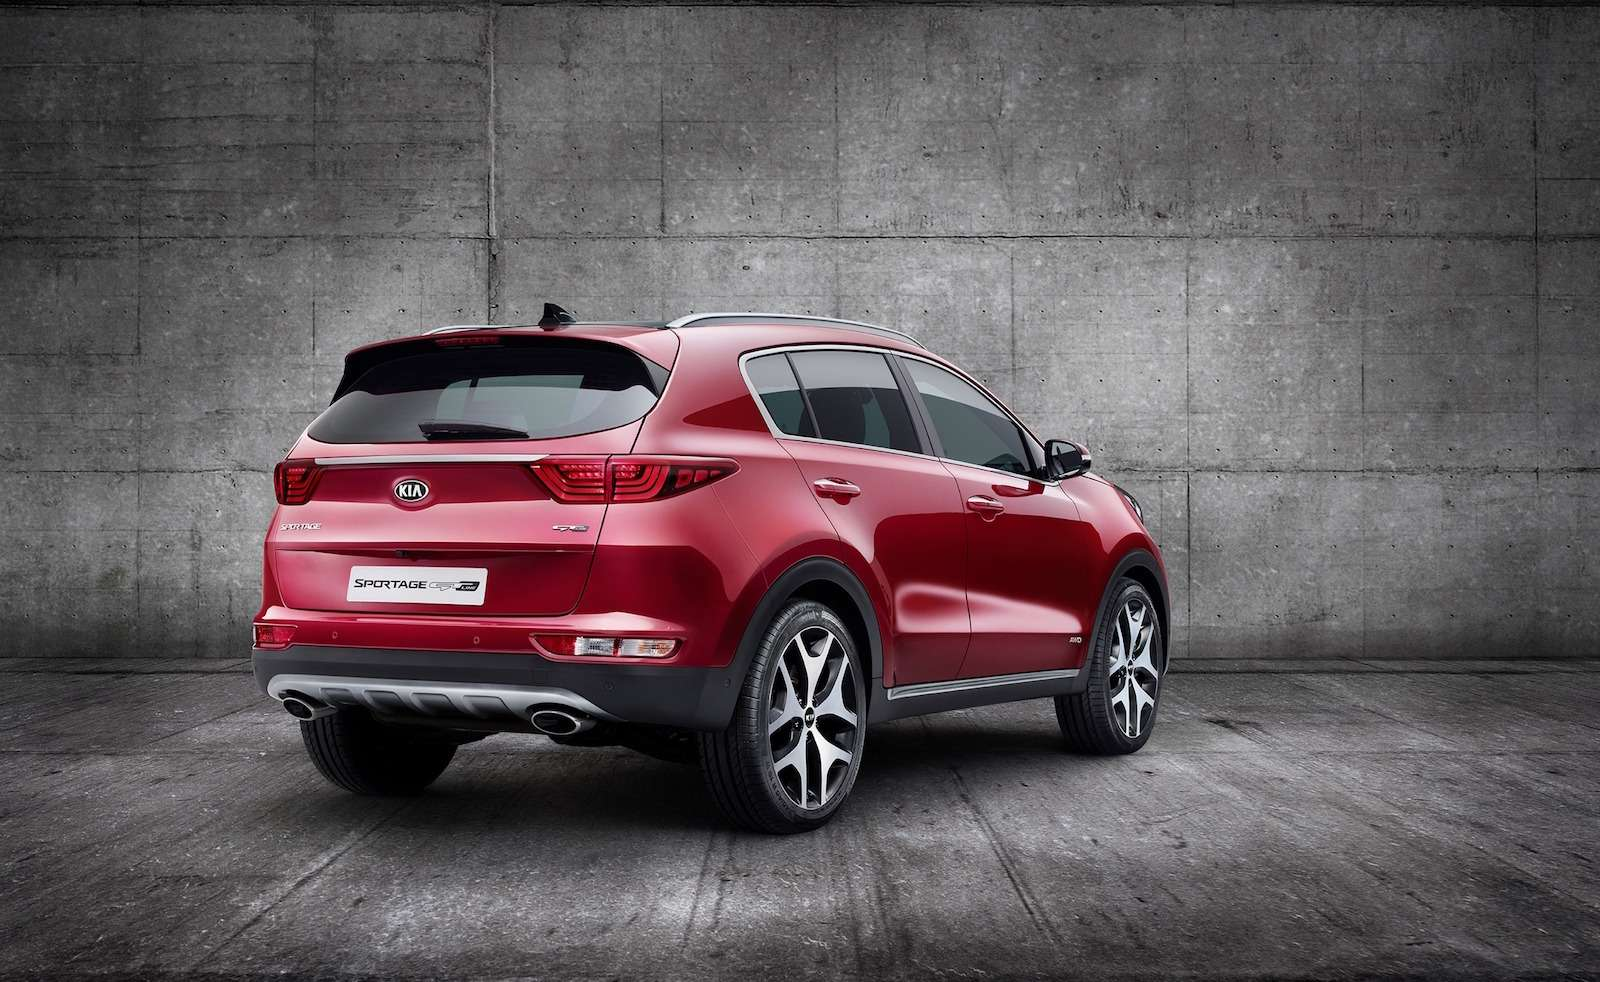 NGSportage_exterior_2